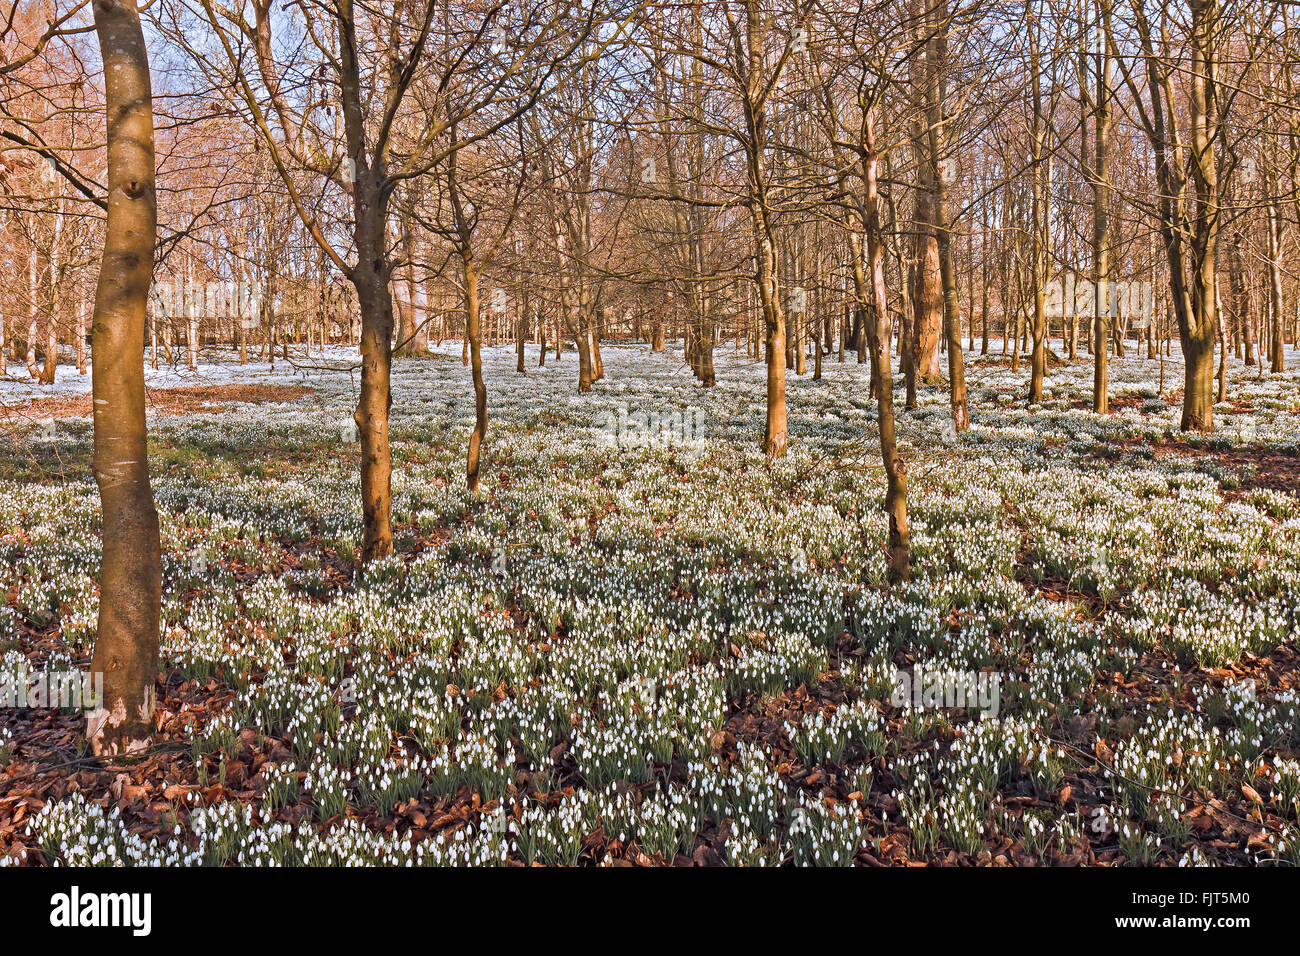 UK Berkshire Welford Park Snowdrops - Stock Image